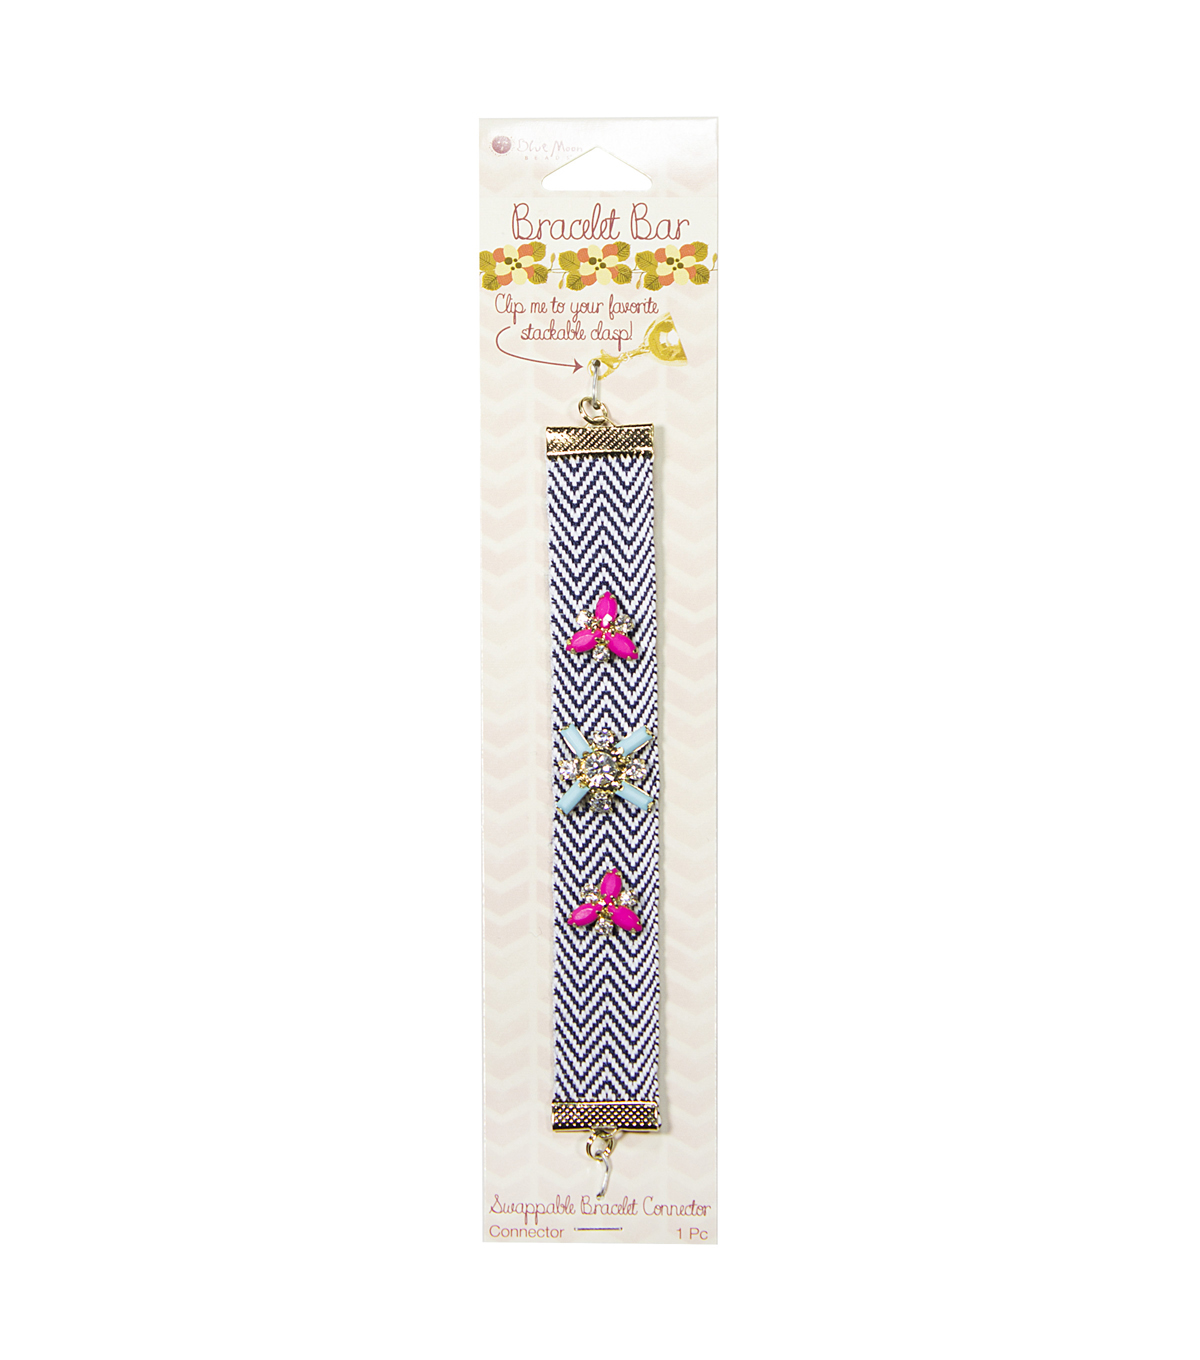 Bracelet Bar Connector Twill Ribbon with rhinestone embellishment